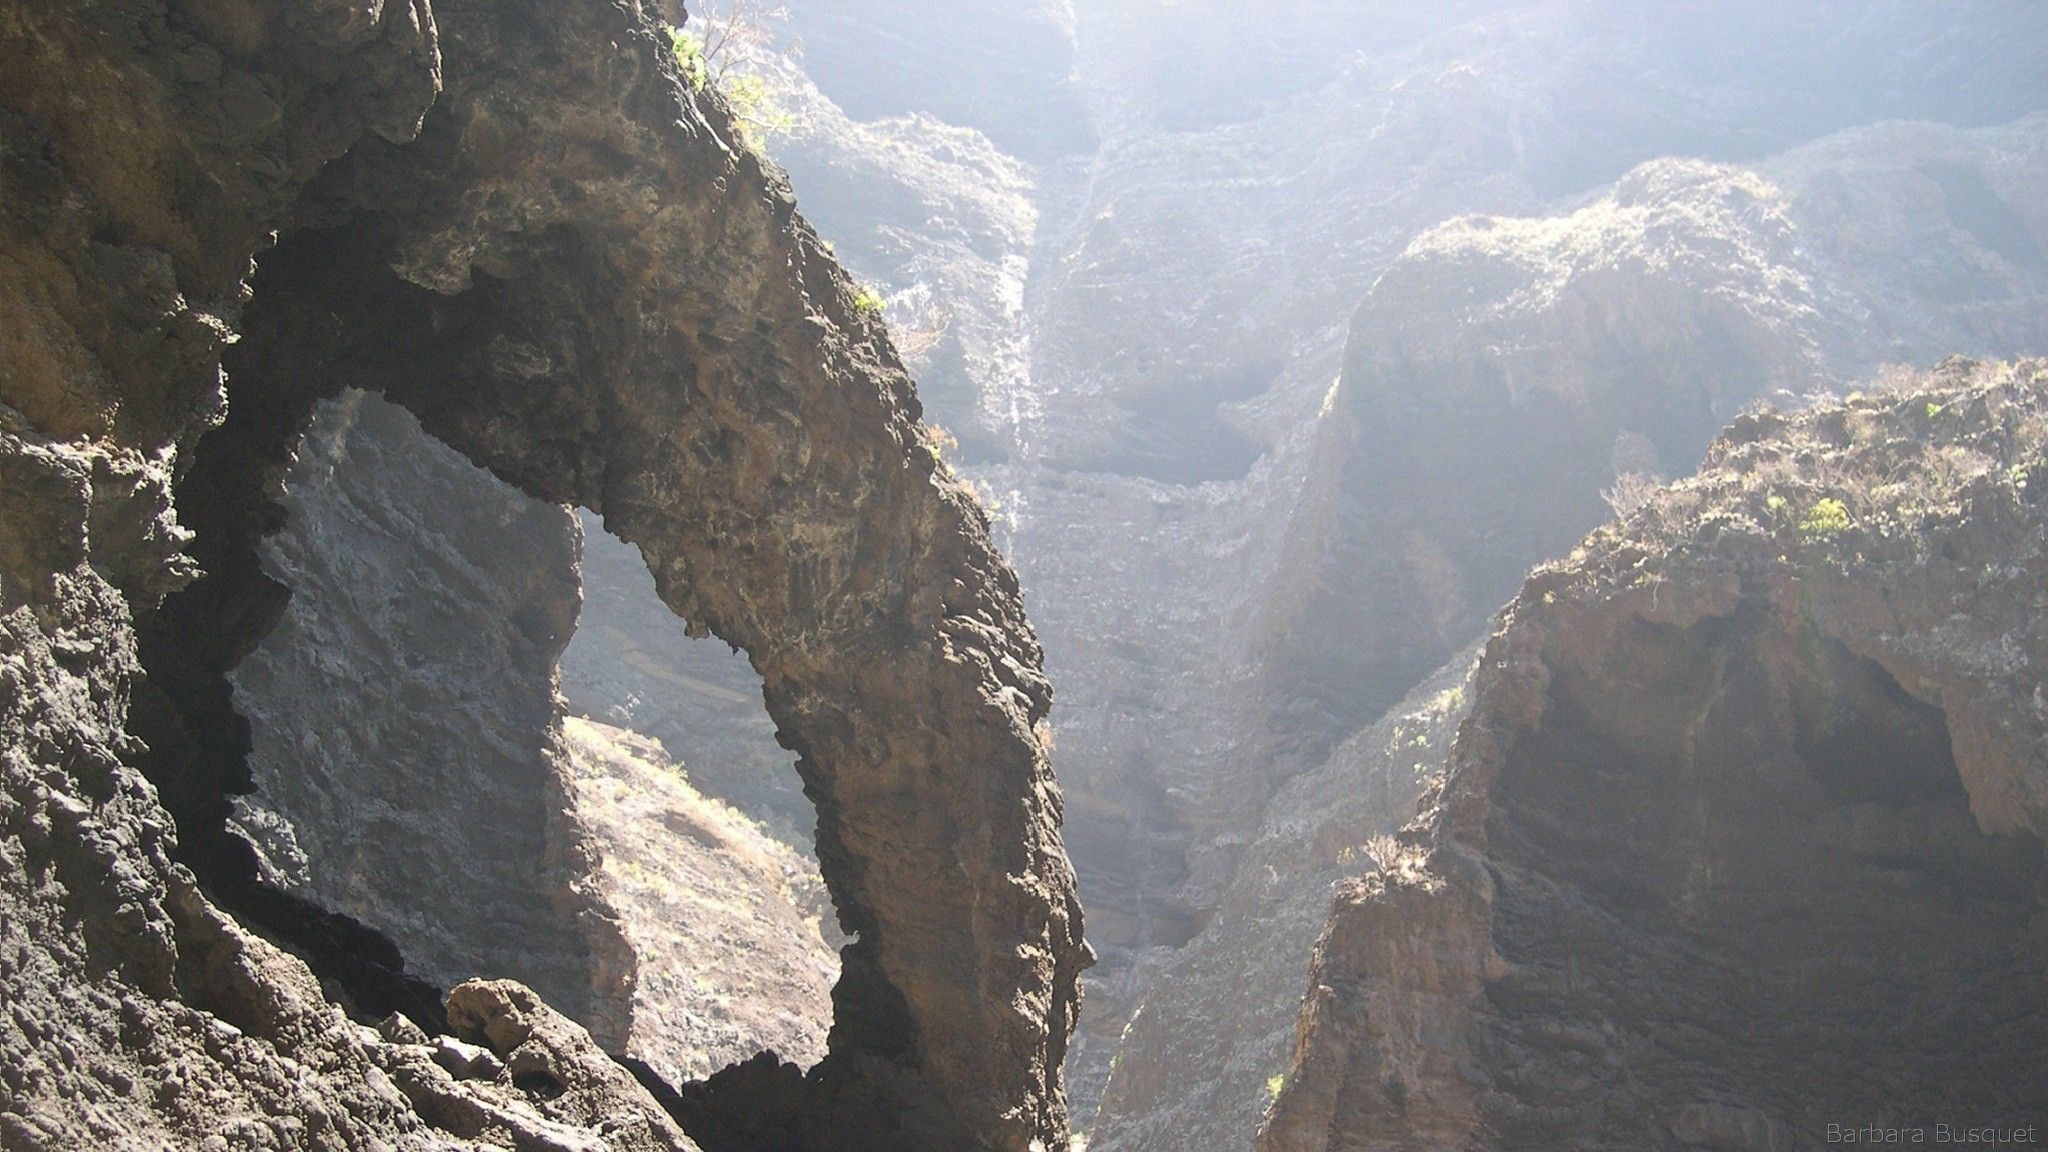 Garganta de Masca en Tenerife - Barbaras HD Wallpapers